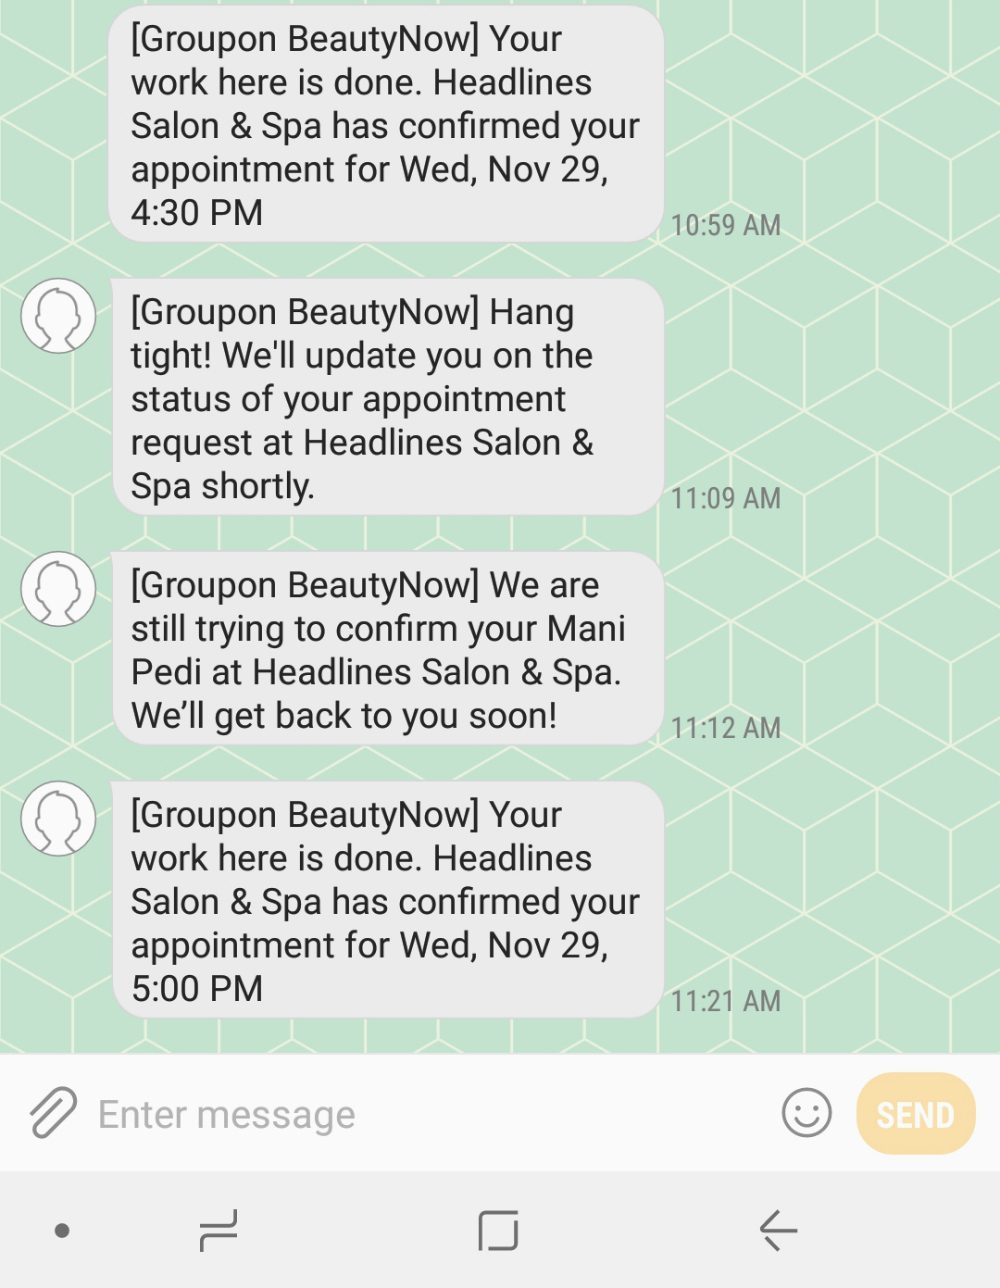 Salon Services Via the Groupon App Giveaway #GrouponBeautyNow #GetBeautyNow AD